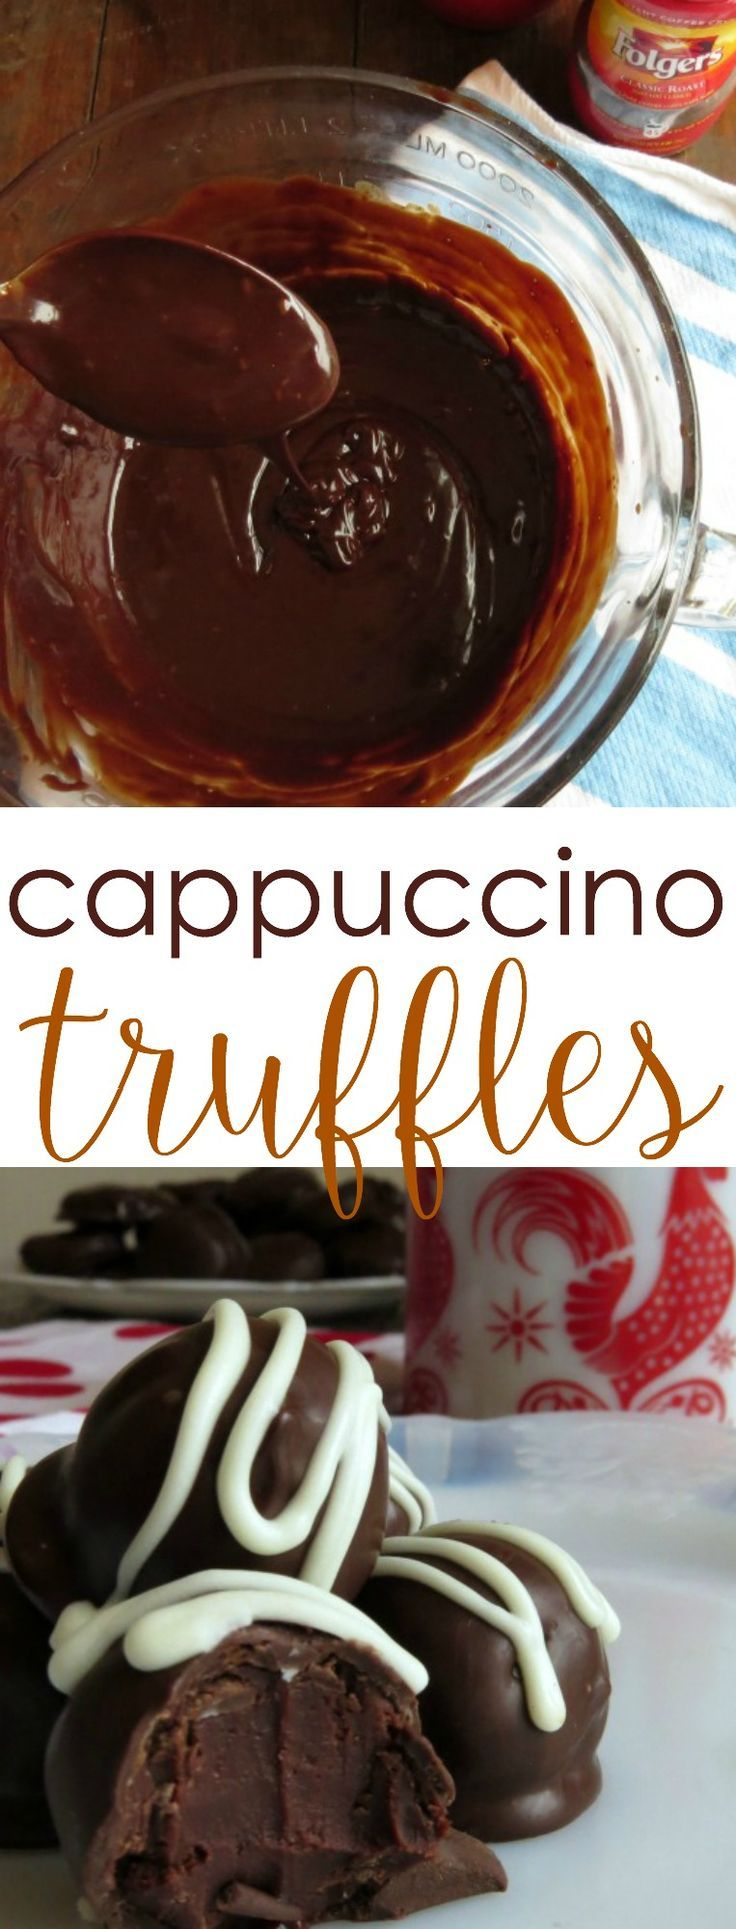 Truffles Recipe: Try these cappuccino truffles for a sweet alternative to your coffee routine. The dark chocolate and mocha flavored middle of this sweet treat is a coffee lover's favorite! You'd be surprised just how easy this recipe is to make-- simple dessert favorite.